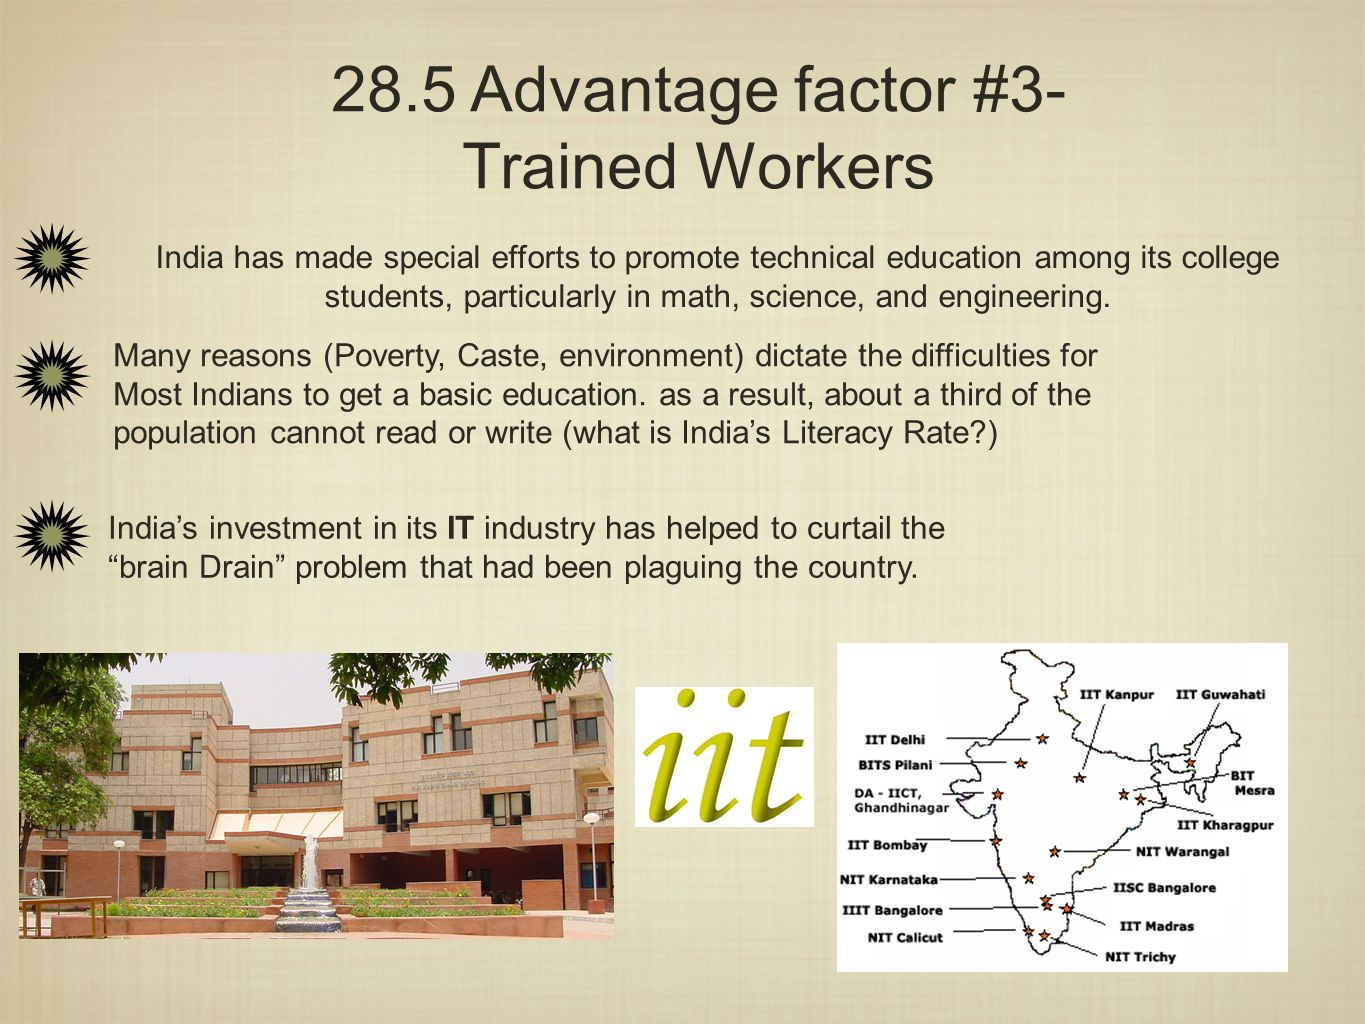 28.5 Advantage factor #3- Trained Workers